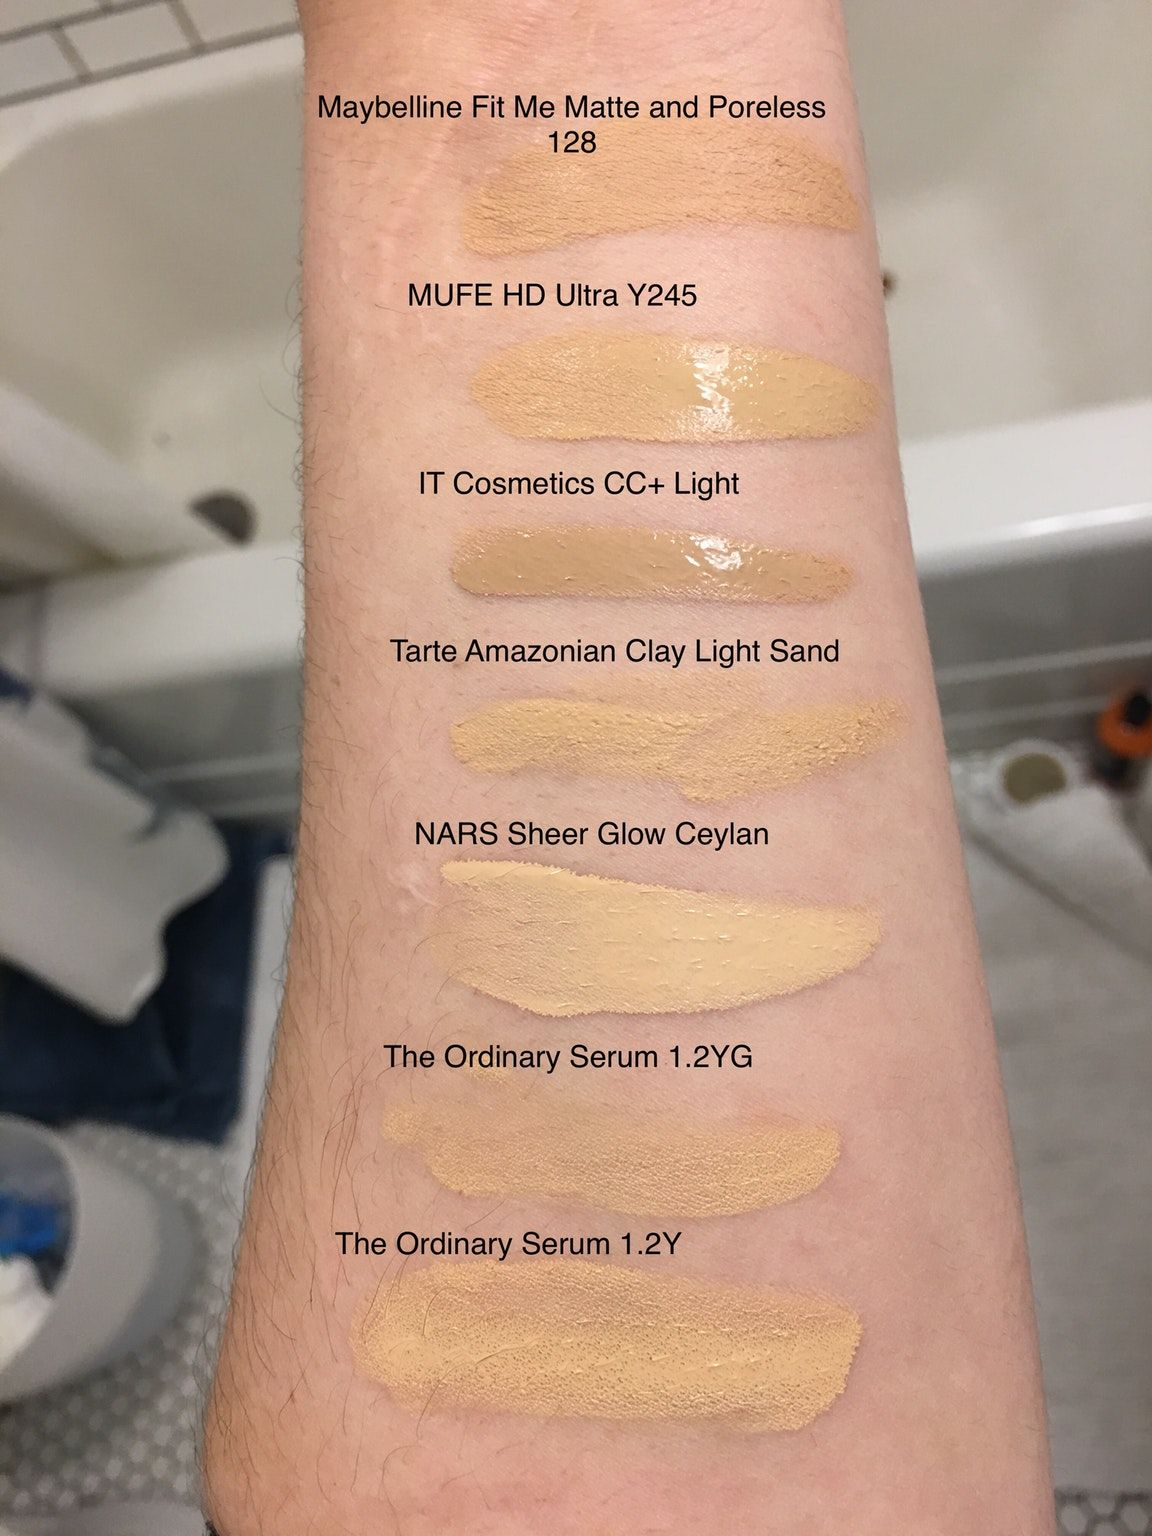 Your existing foundations/concealers